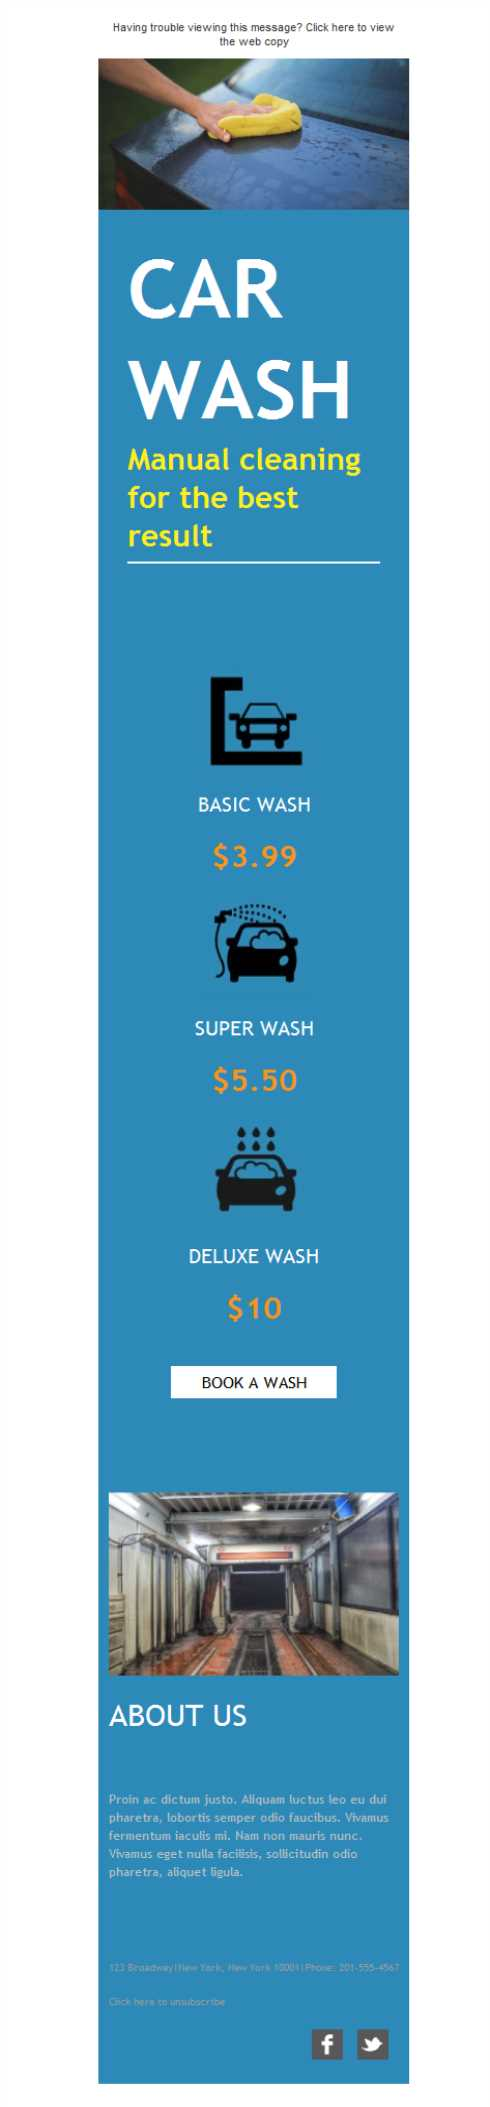 Templates Emailing Car Wash Service Sarbacane